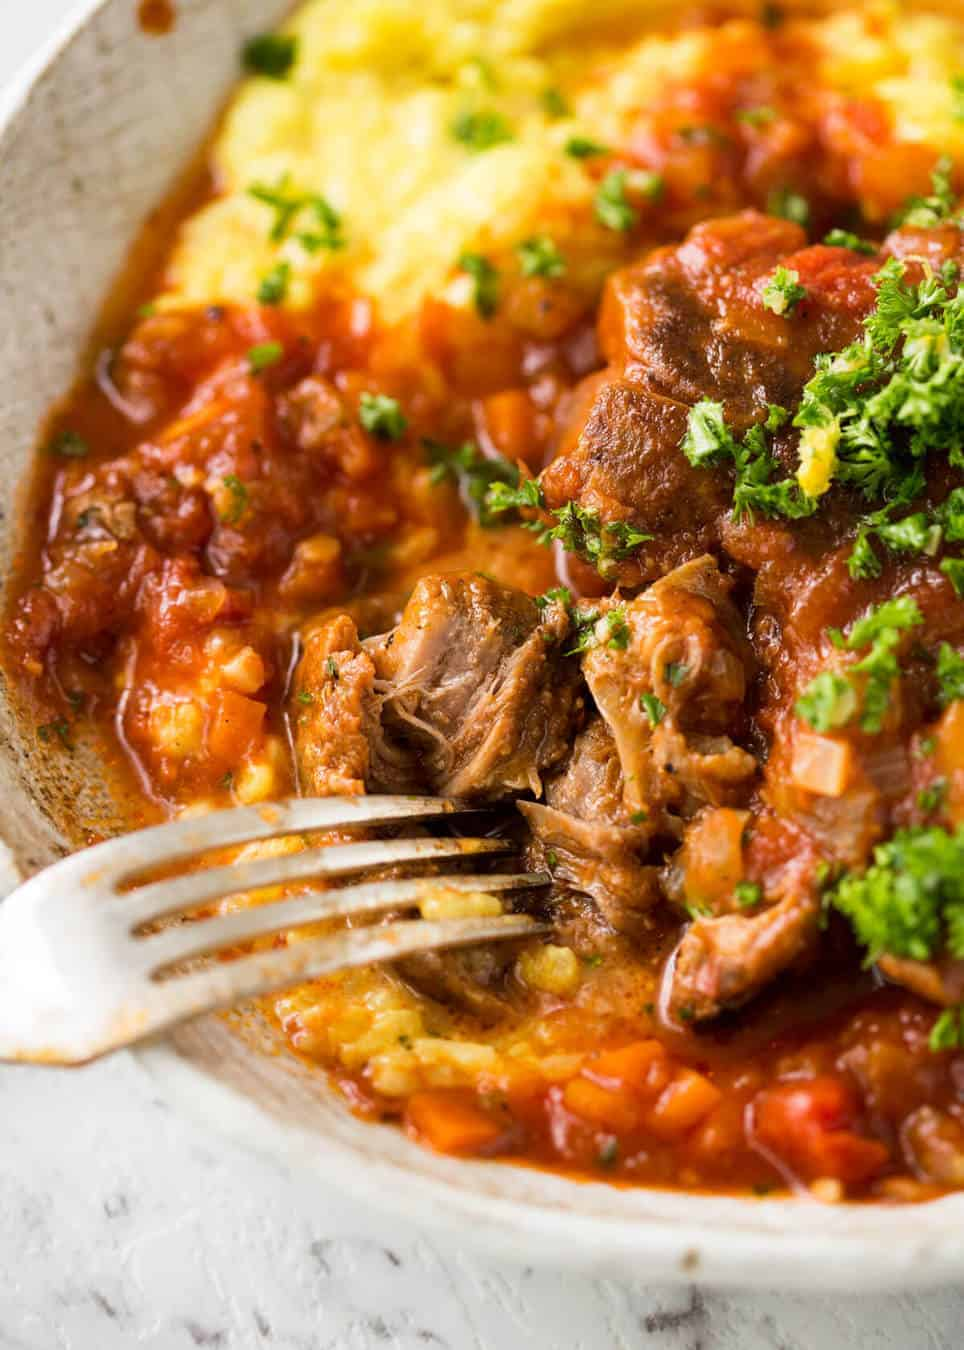 Fork tender veal braised in a rich red sauce, Osso Buco is a meal fit for a king! www.recipetineats.com